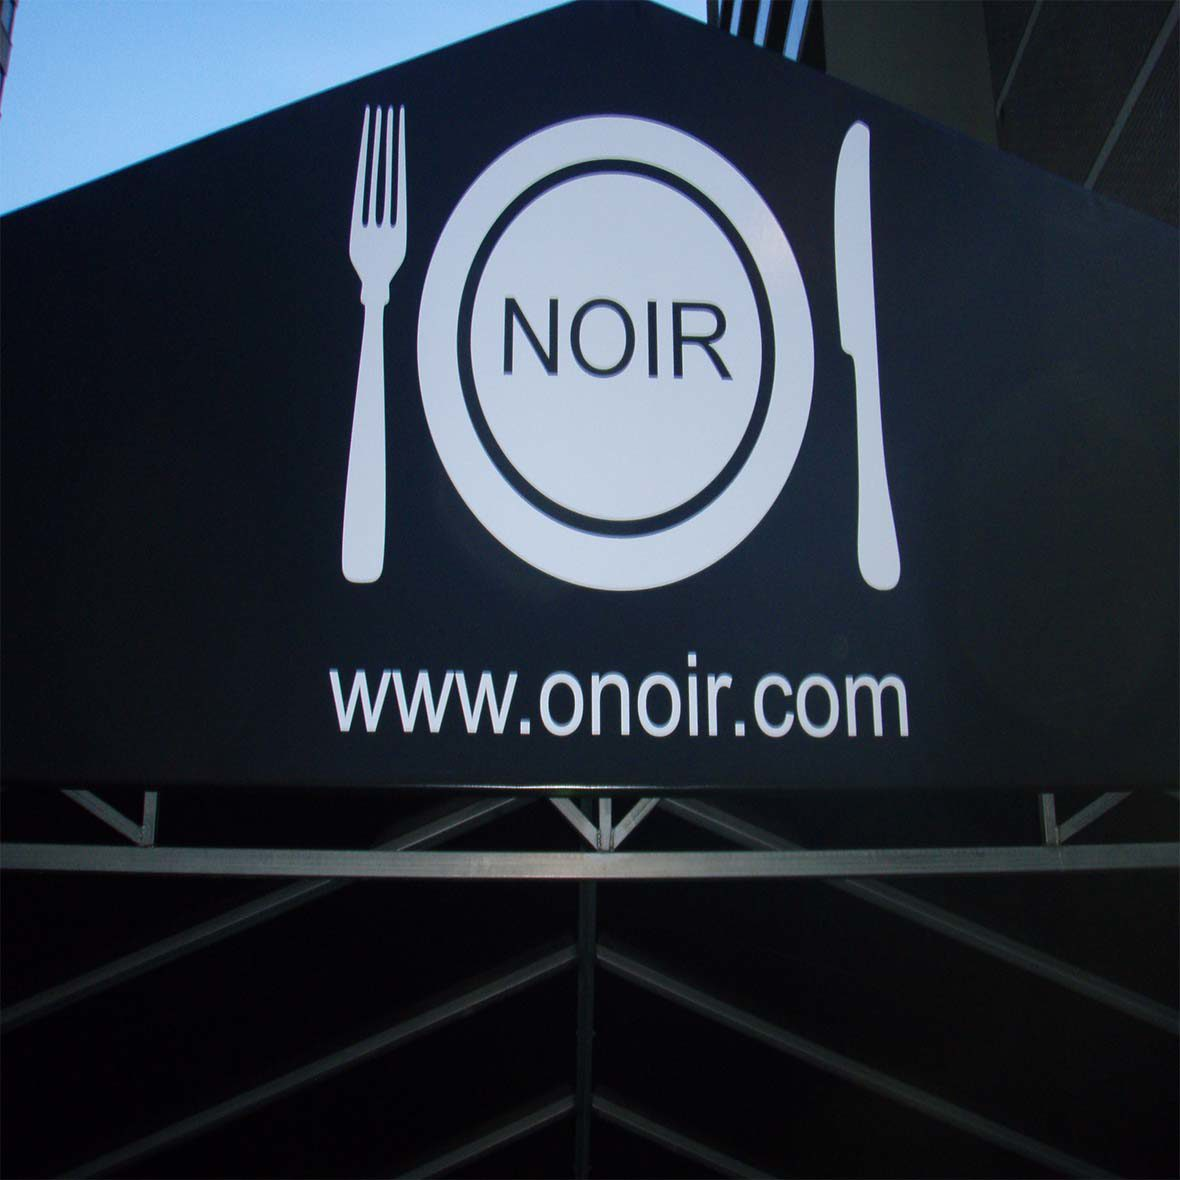 "Black triangular sign with fork, knife and dish that says ""ONOIR"" and www.onoir.com under."